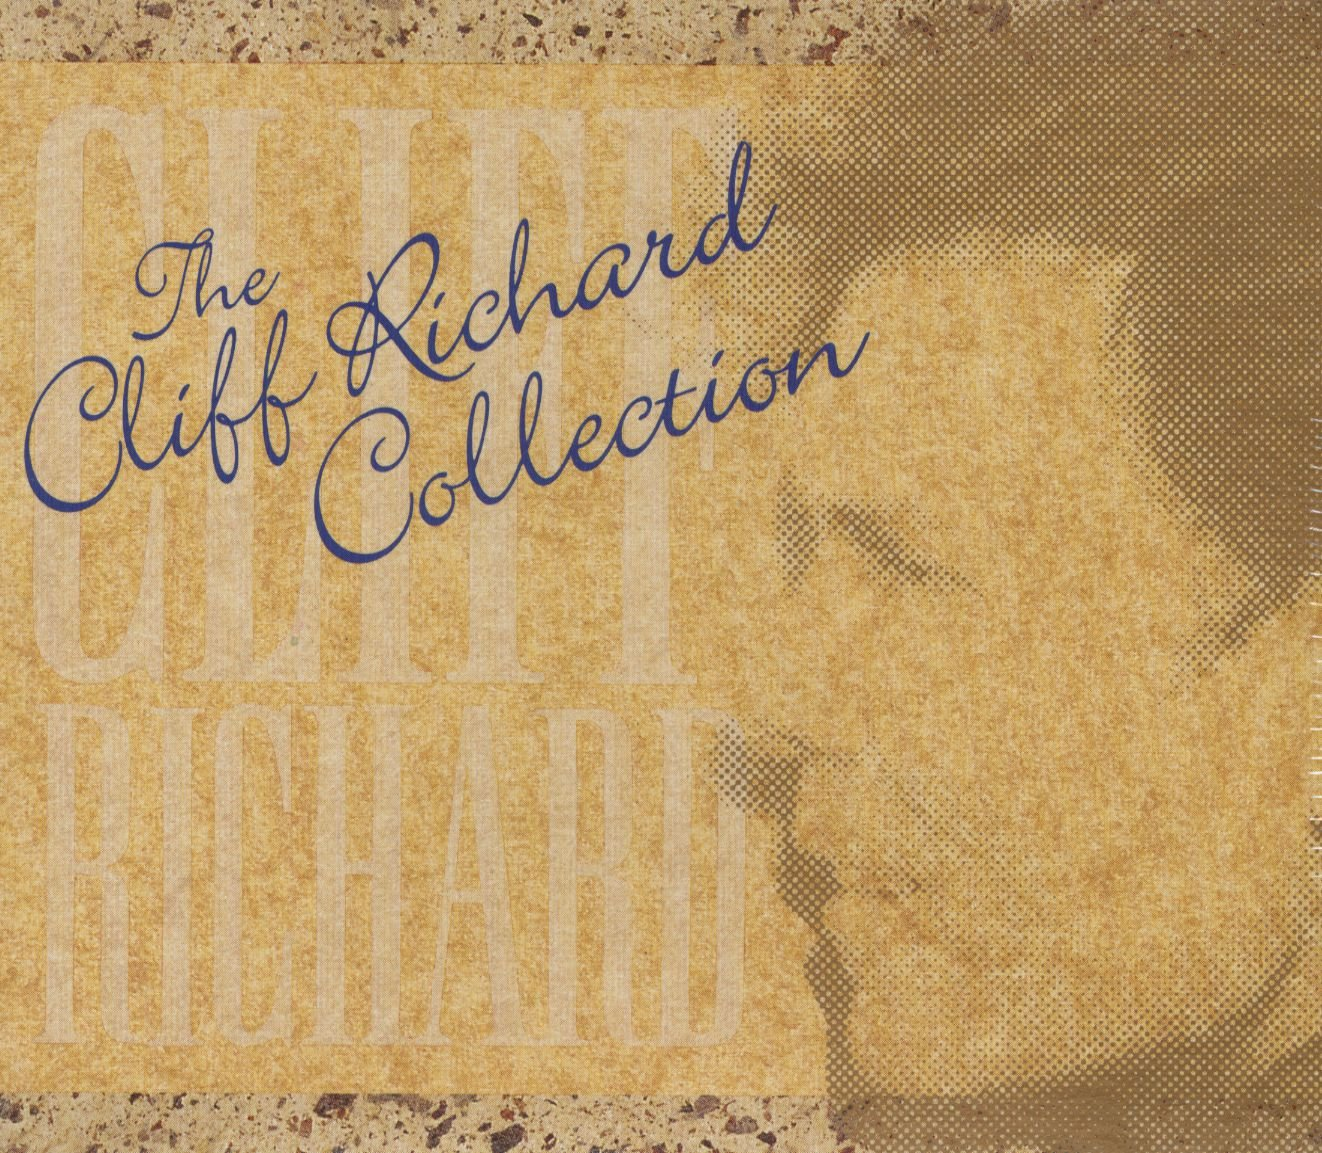 The Cliff Richard Collection by Richard, Cliff